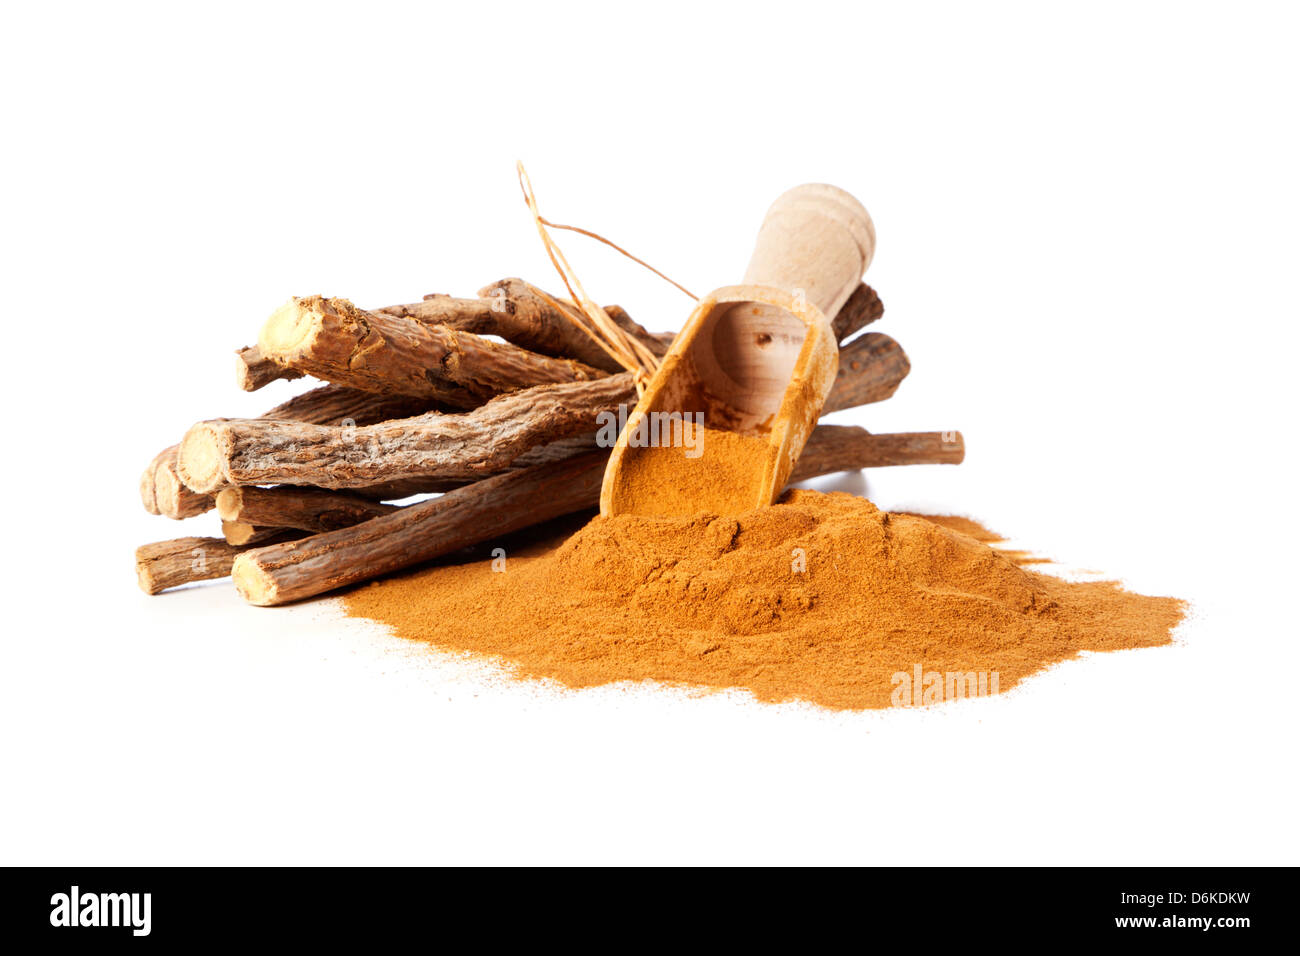 Heap of ground liquorice with wooden shovel and bundle of native liquorice roots - Stock Image